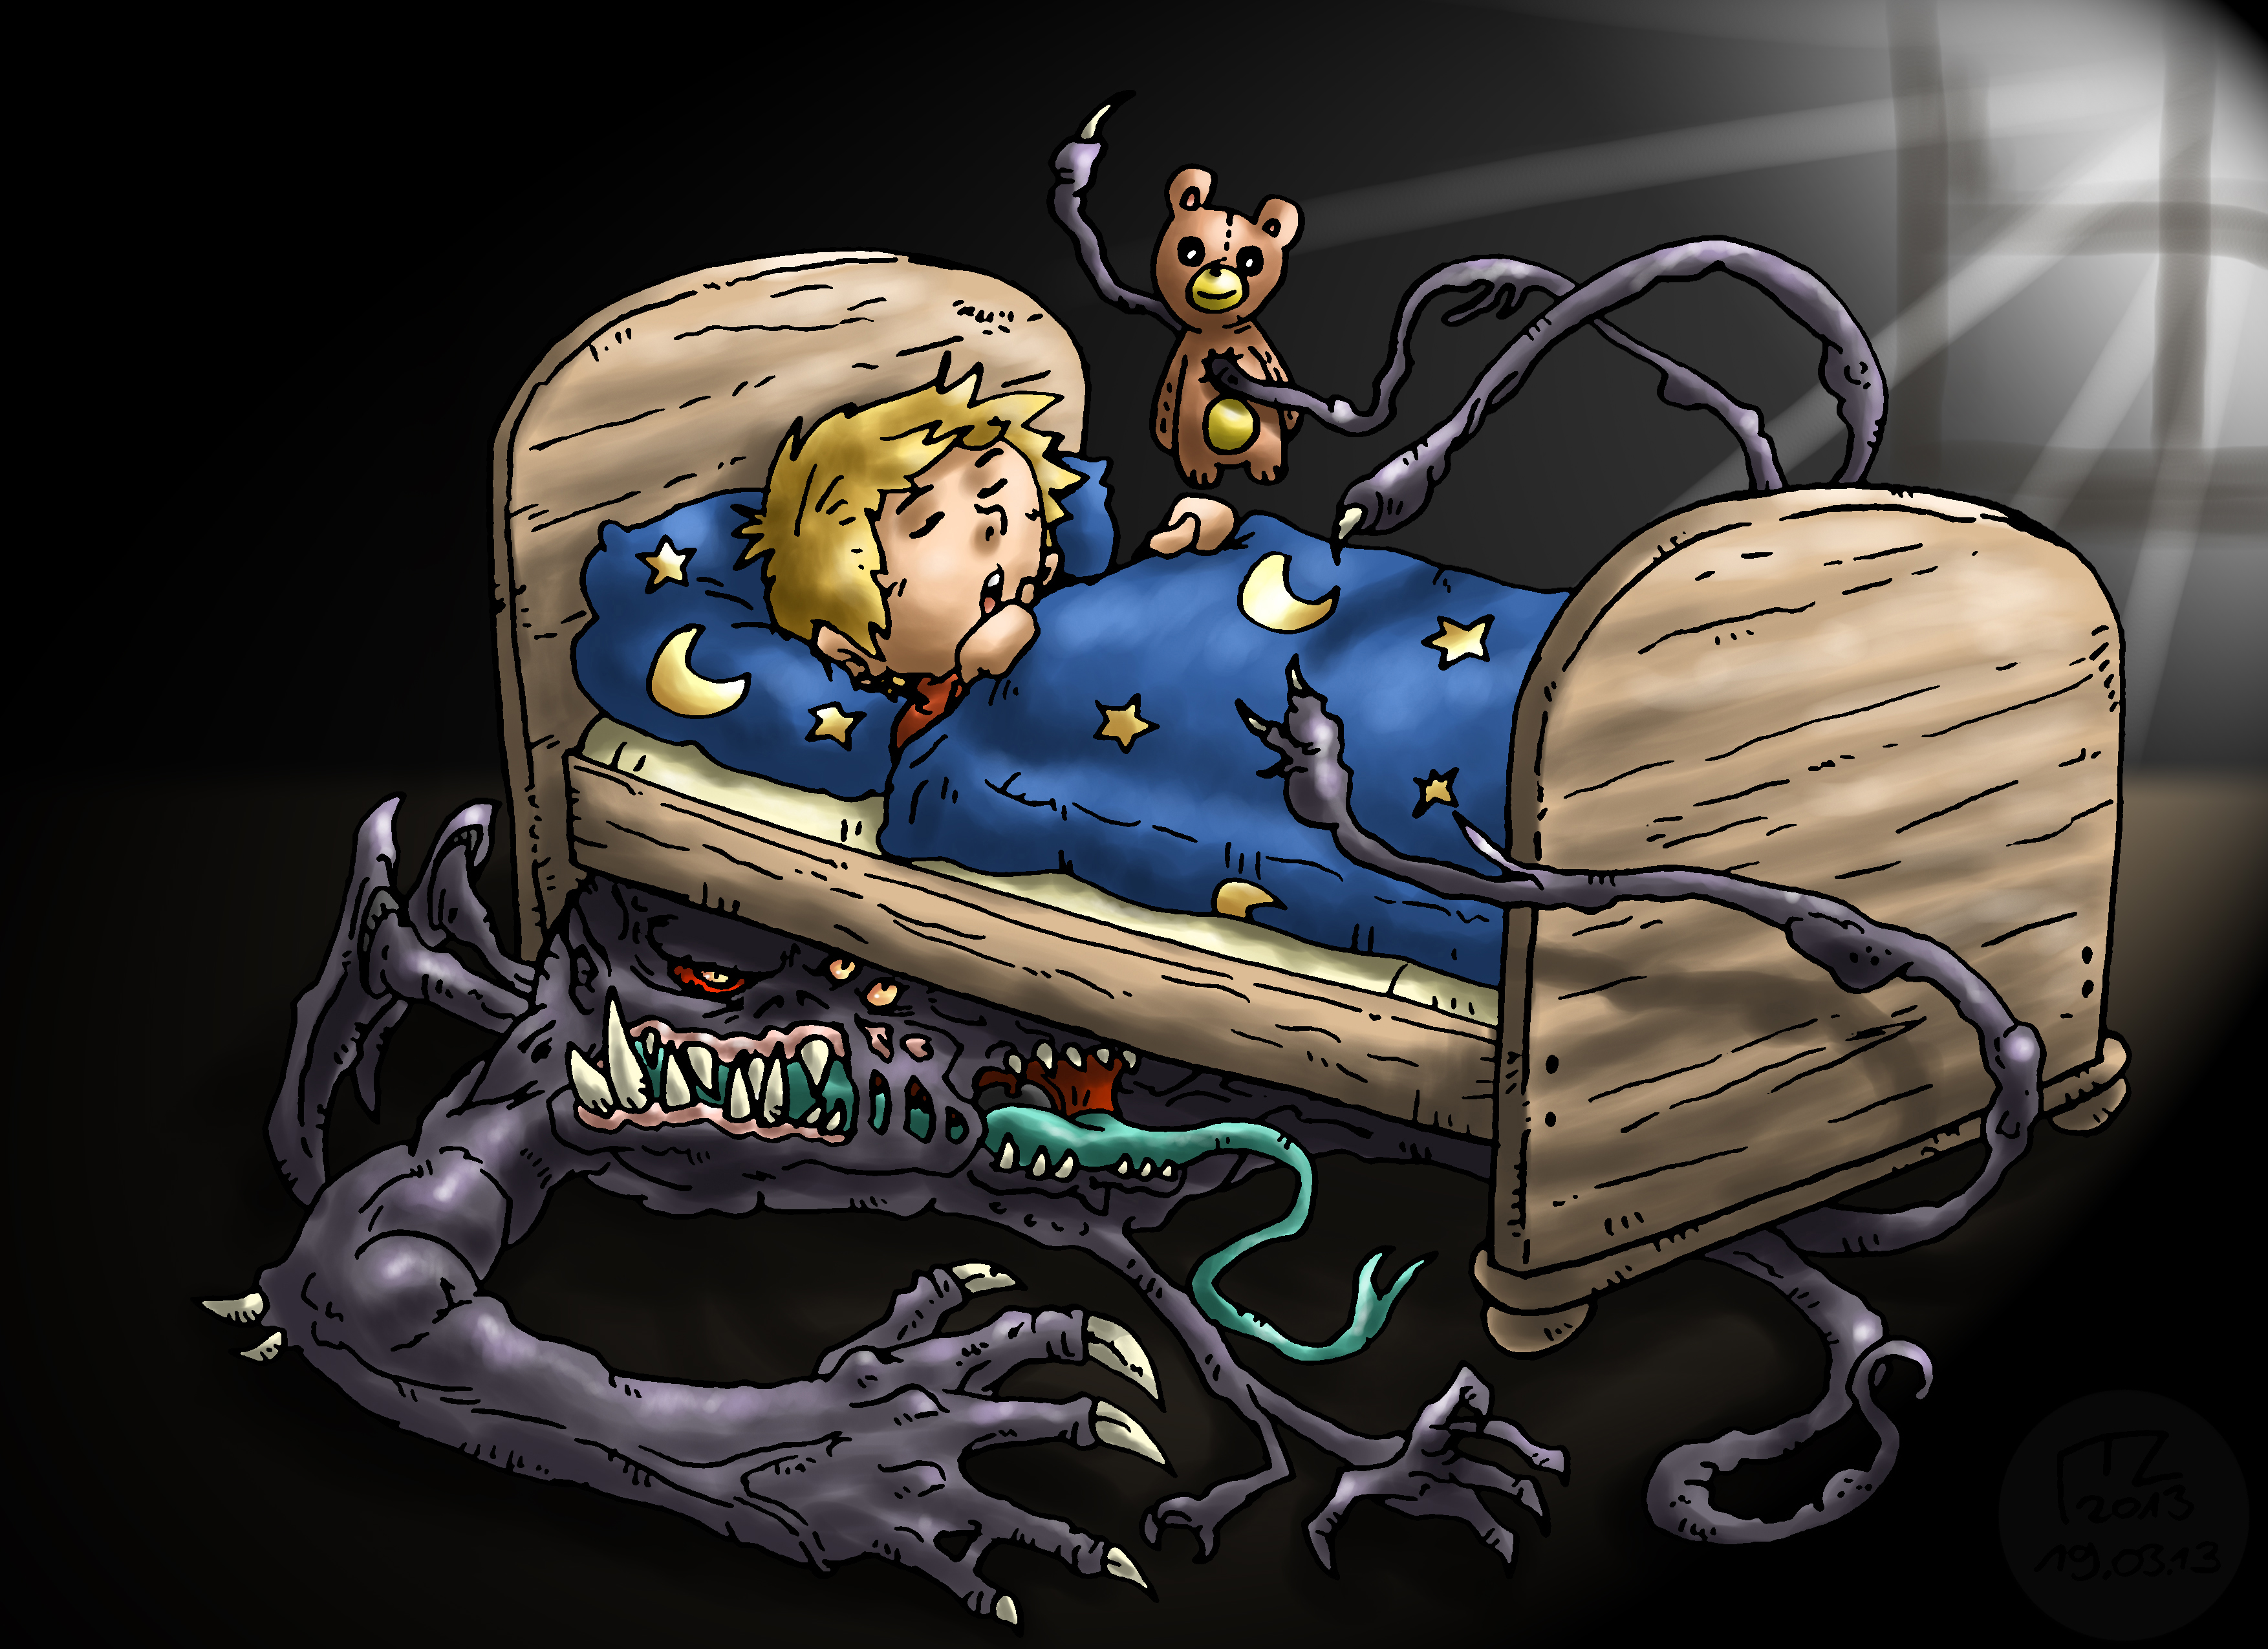 das monster unter dem bett monster under the bed by blue hugo on deviantart. Black Bedroom Furniture Sets. Home Design Ideas